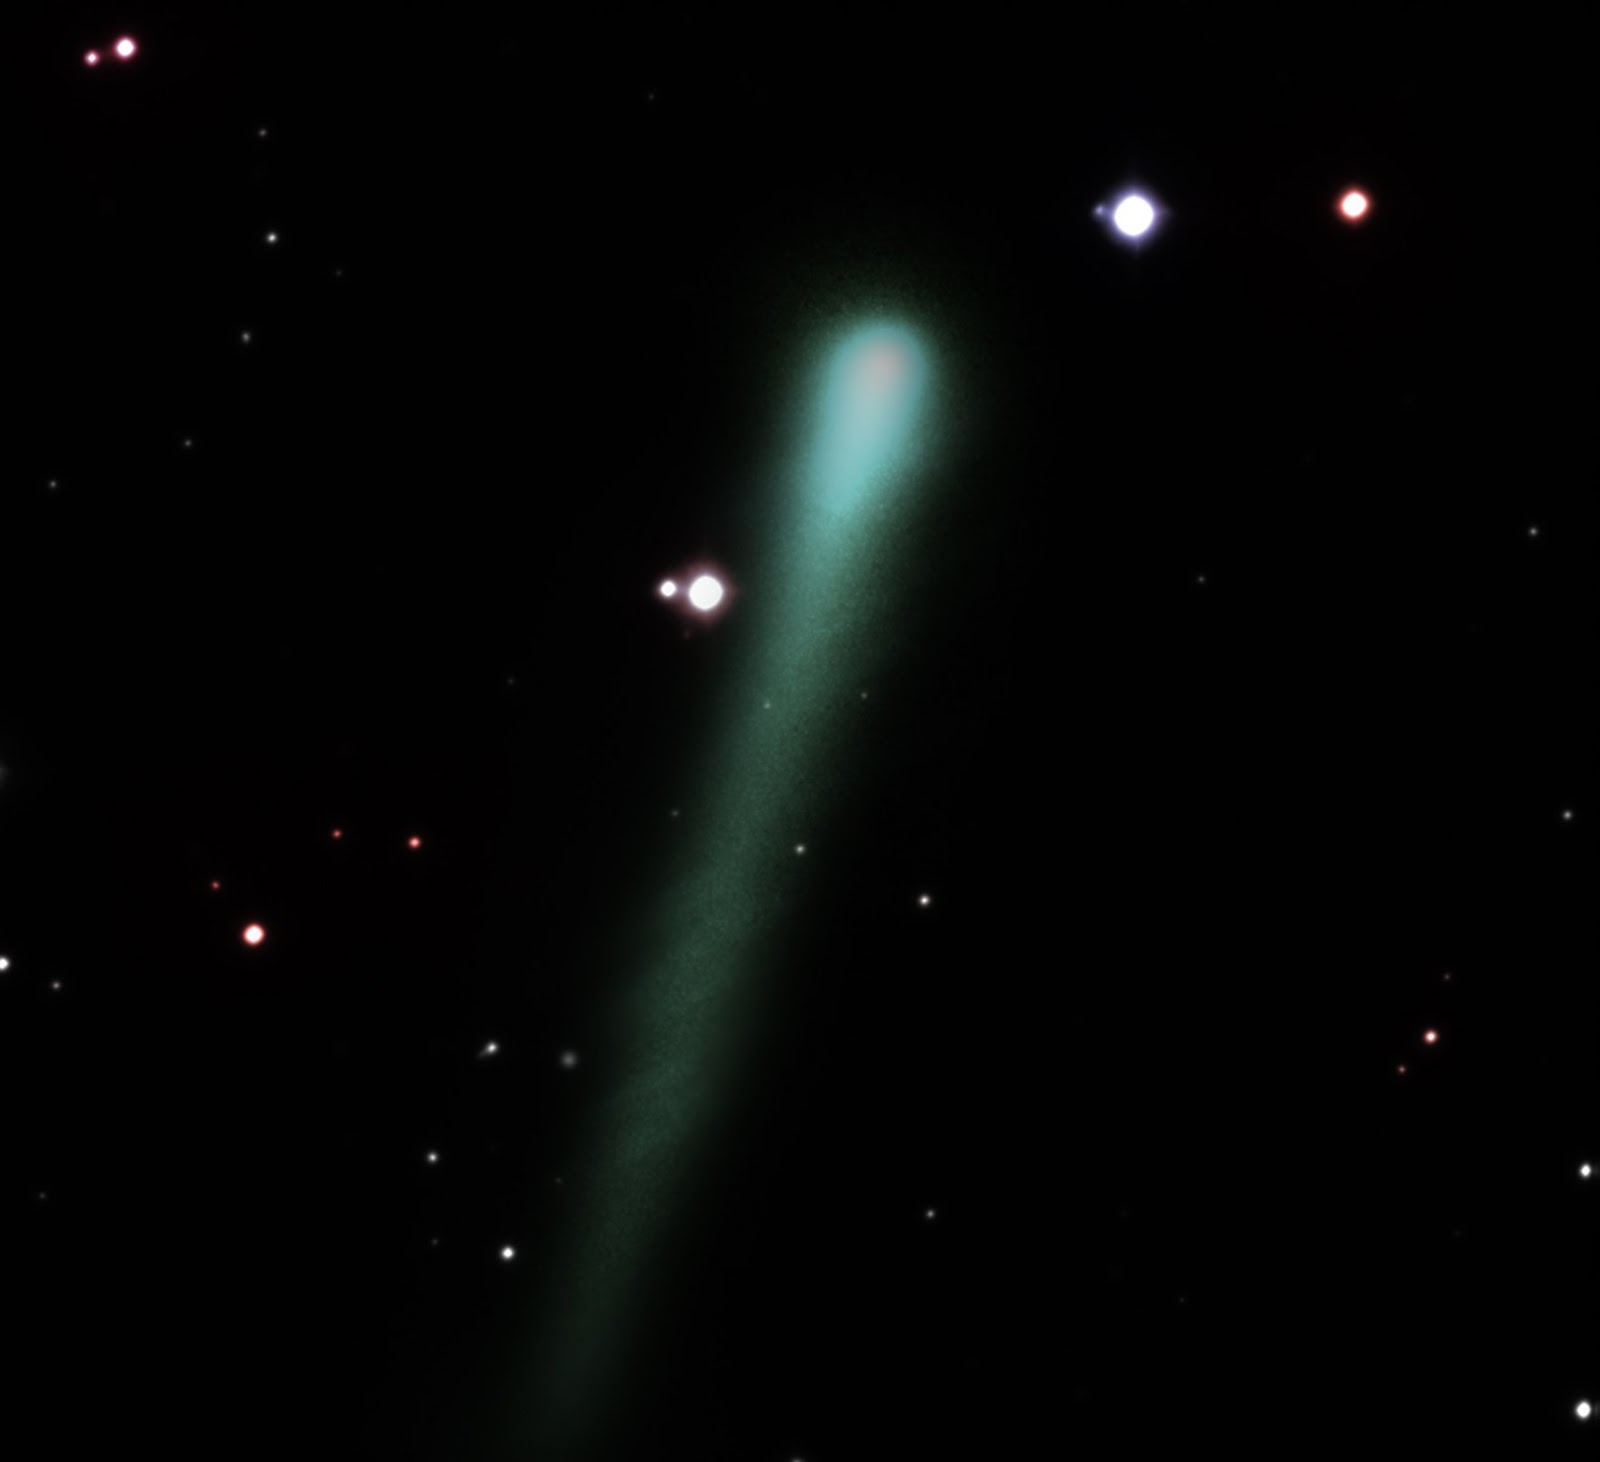 Comet Encke 2013 wallpaper background